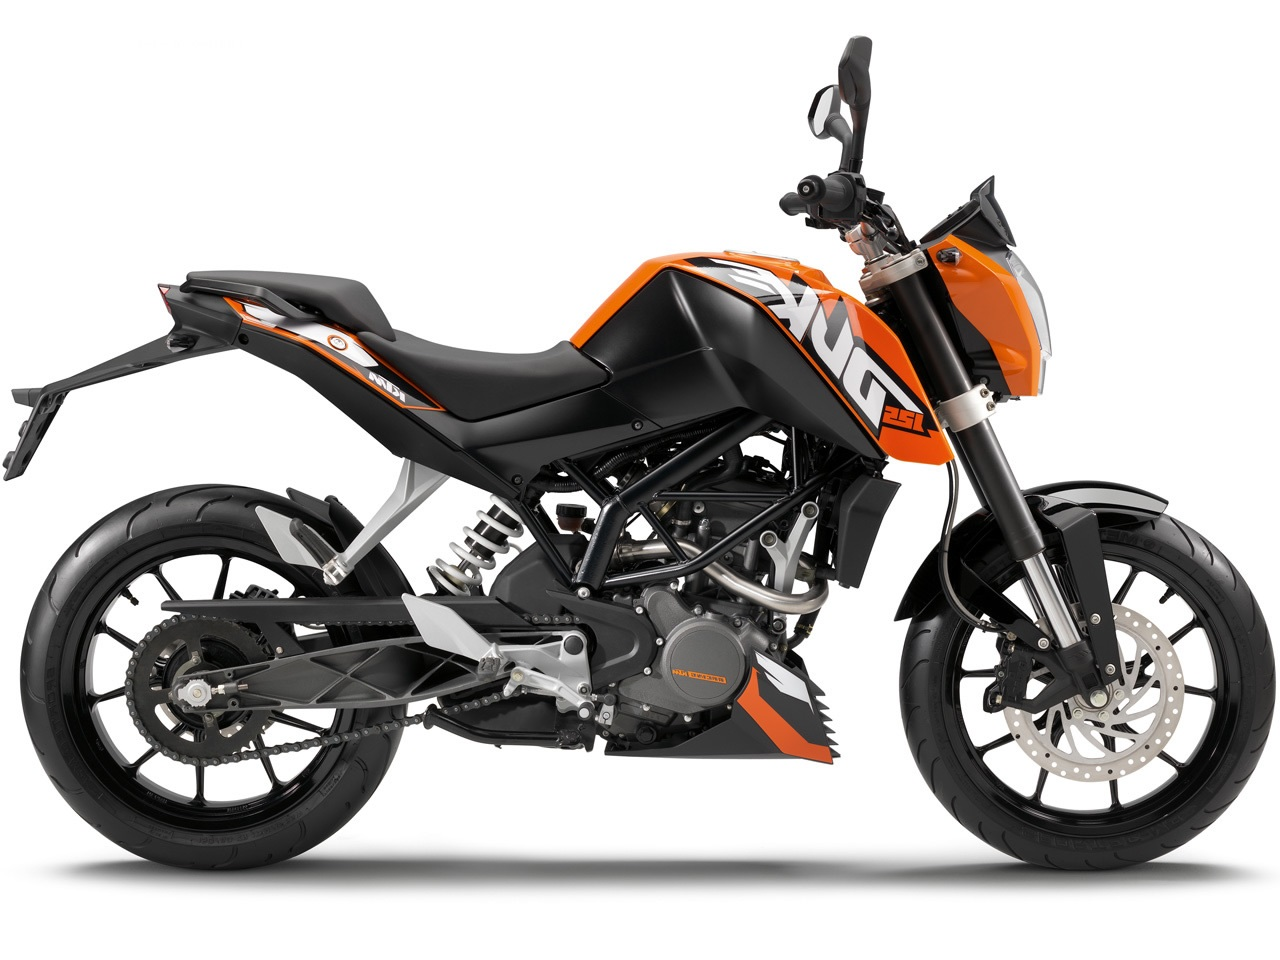 ktm 125 duke fiche technique avis et prix la poign e dans l 39 angle. Black Bedroom Furniture Sets. Home Design Ideas